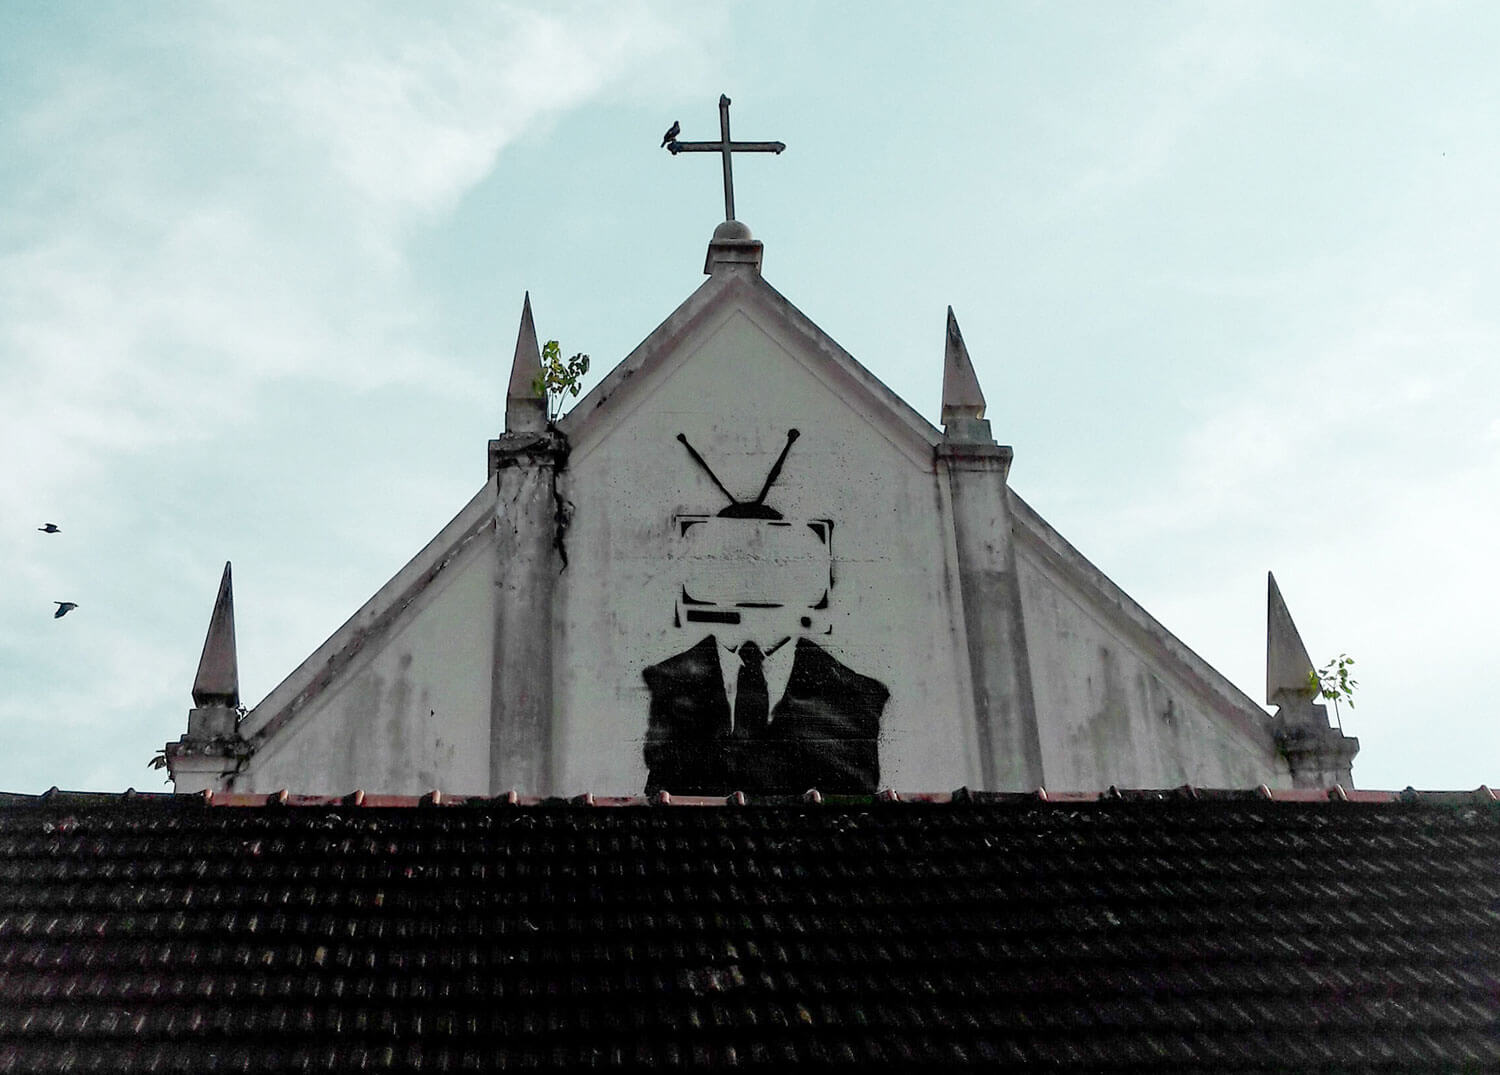 A photo illustration of a conspiracy-looking image graffitied onto the side of a church building.